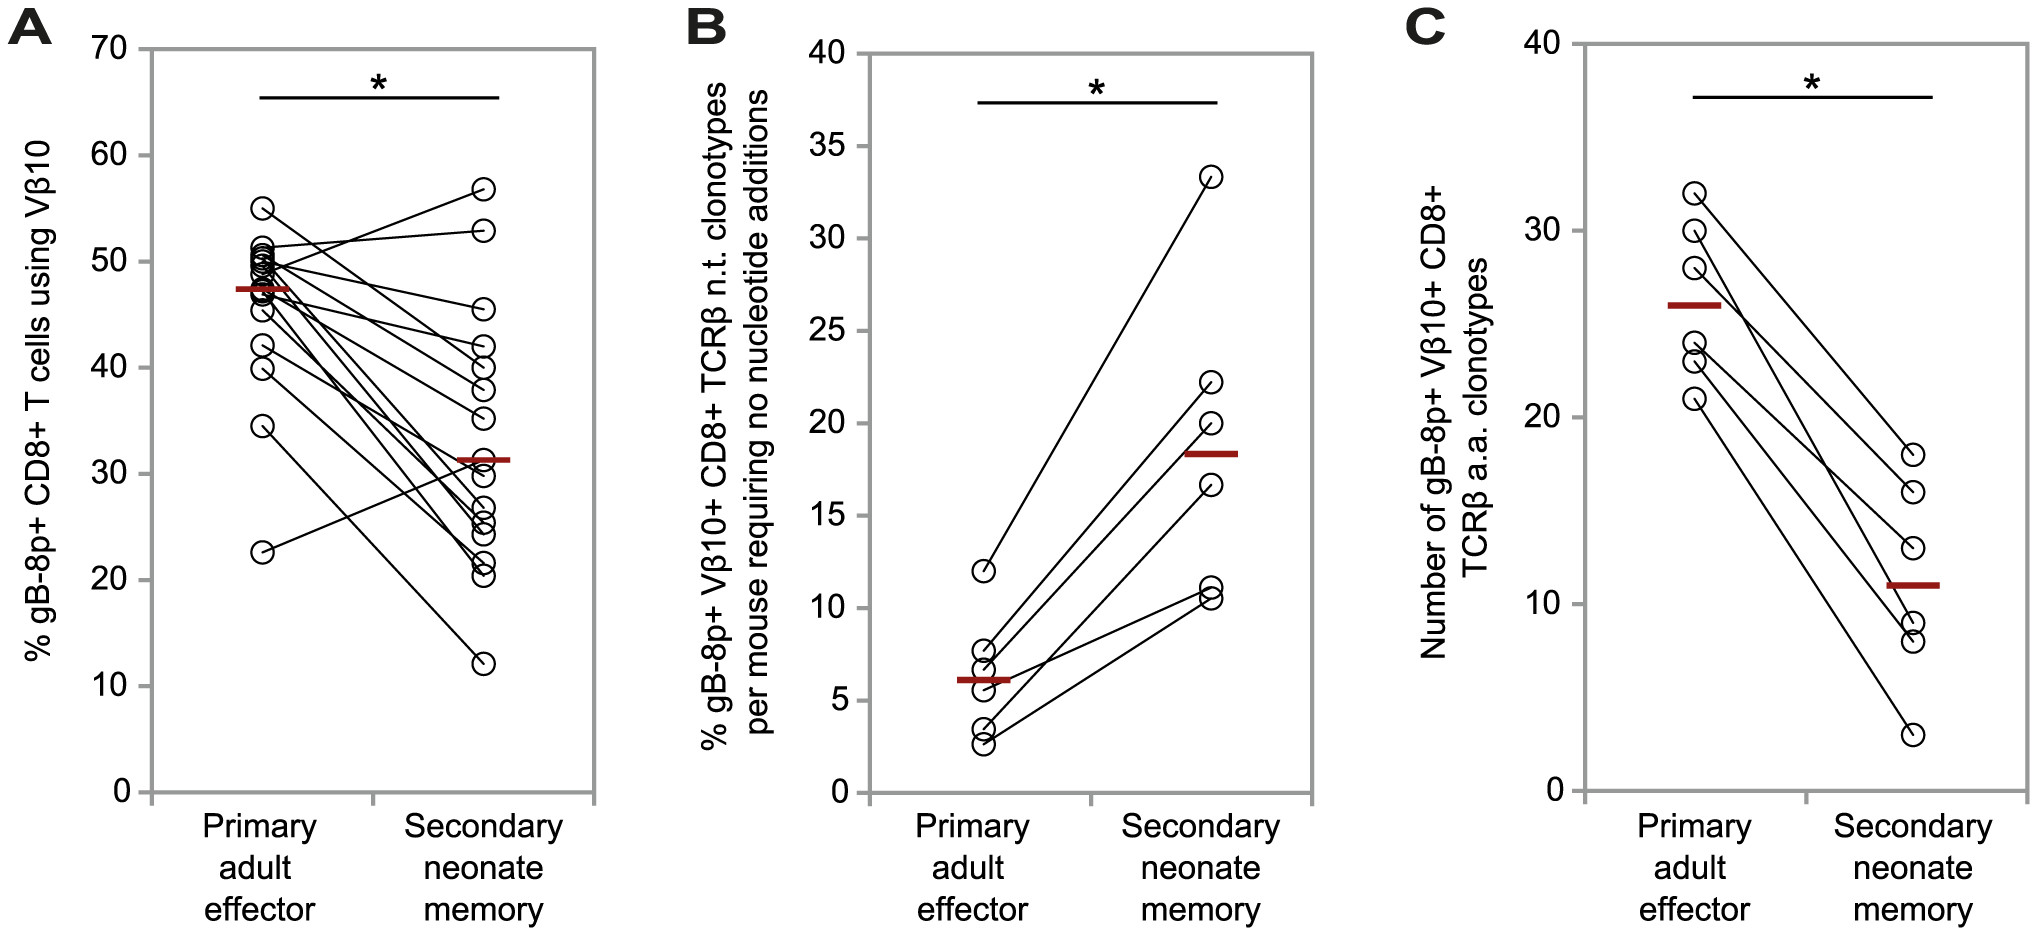 Comparison of the features of the gB-8p-specific TCRβ repertoires between primary adult effector and secondary neonate memory CD8+ T cell populations responding to HSV-1 in congenic mice following the adoptive transfer of resting memory cells from neonatal mice previously infected with VACV-gB.